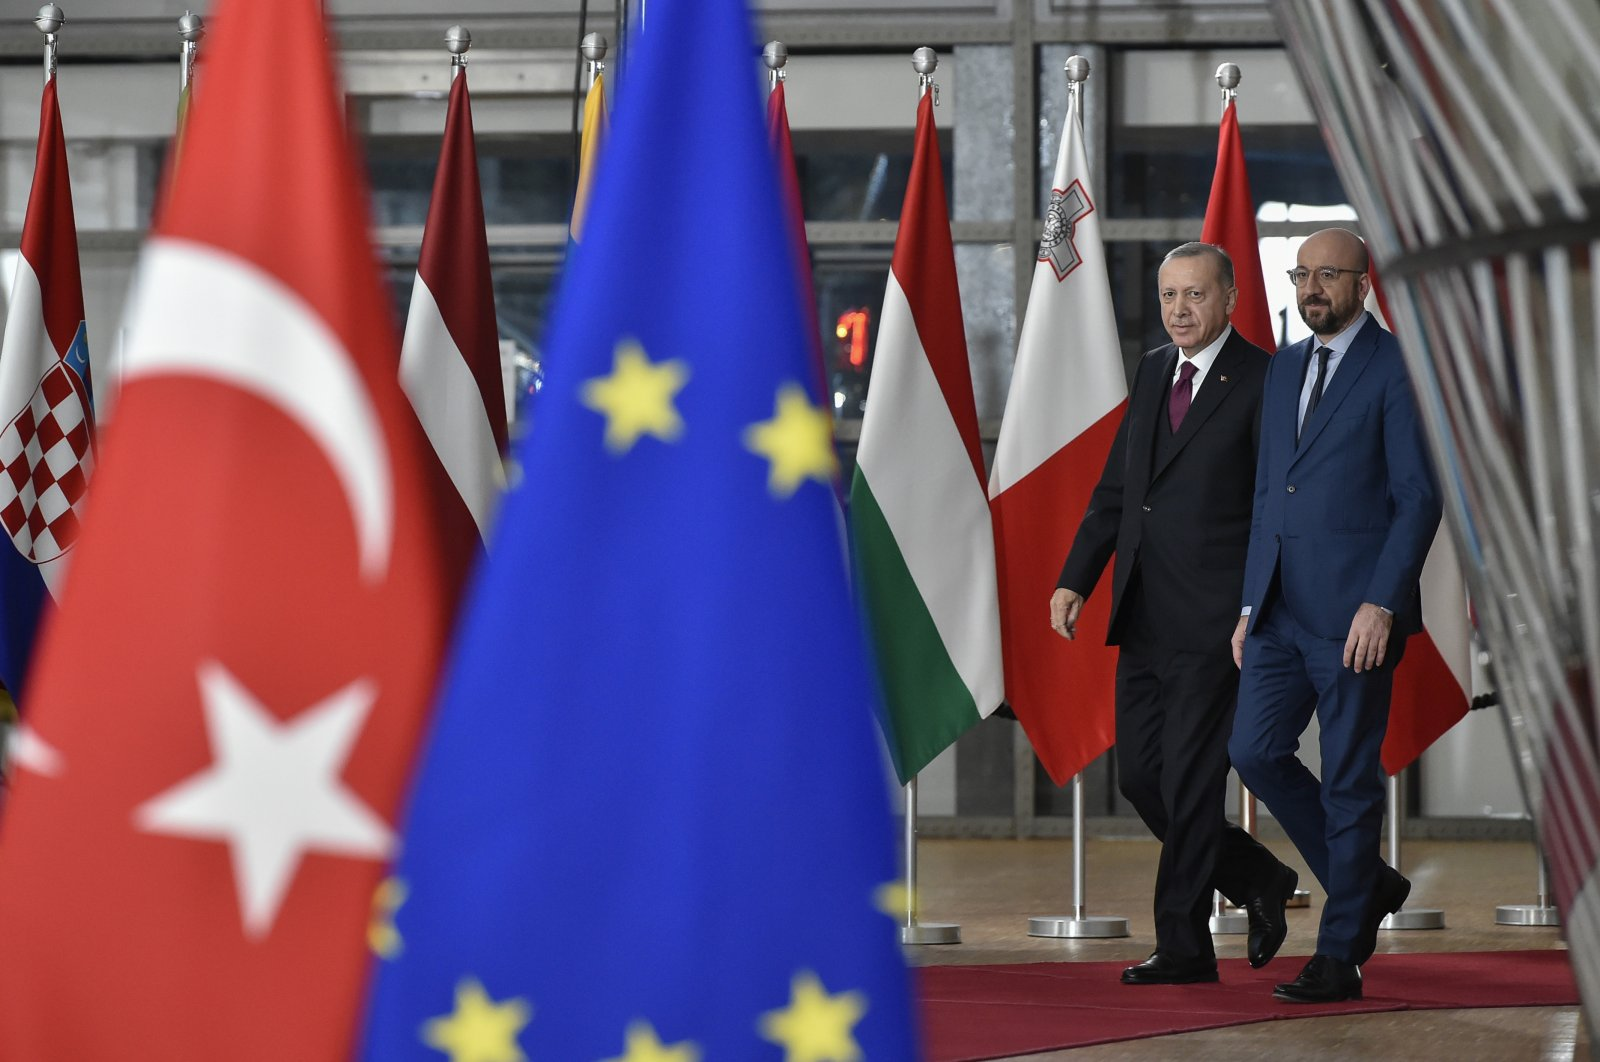 President Recep Tayyip Erdoğan walks with European Council President Charles Michel as he arrives at the European Council building in Brussels, March 9, 2020. (AP Photo)